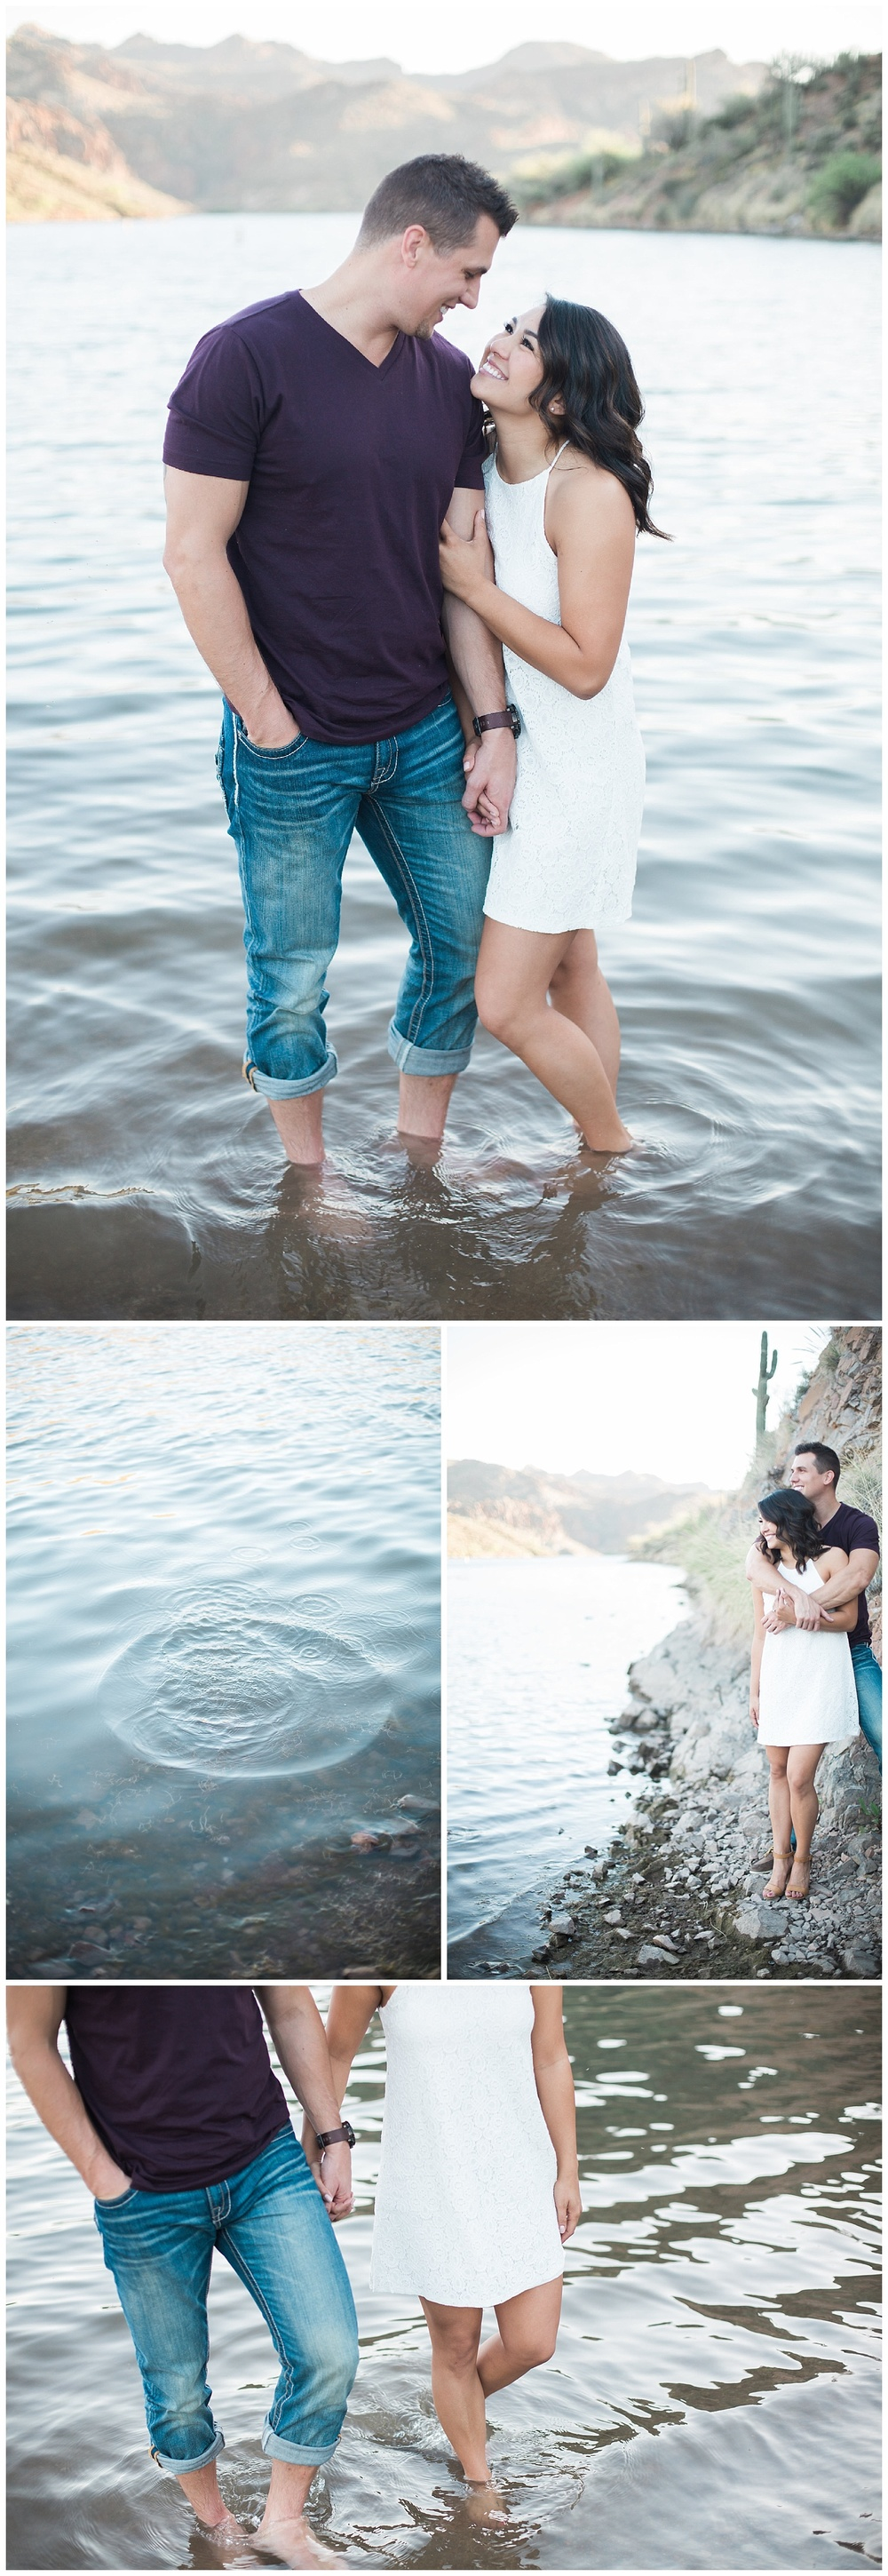 Jade-and-Josh-Engagament-Saguaro-Lake.jpg